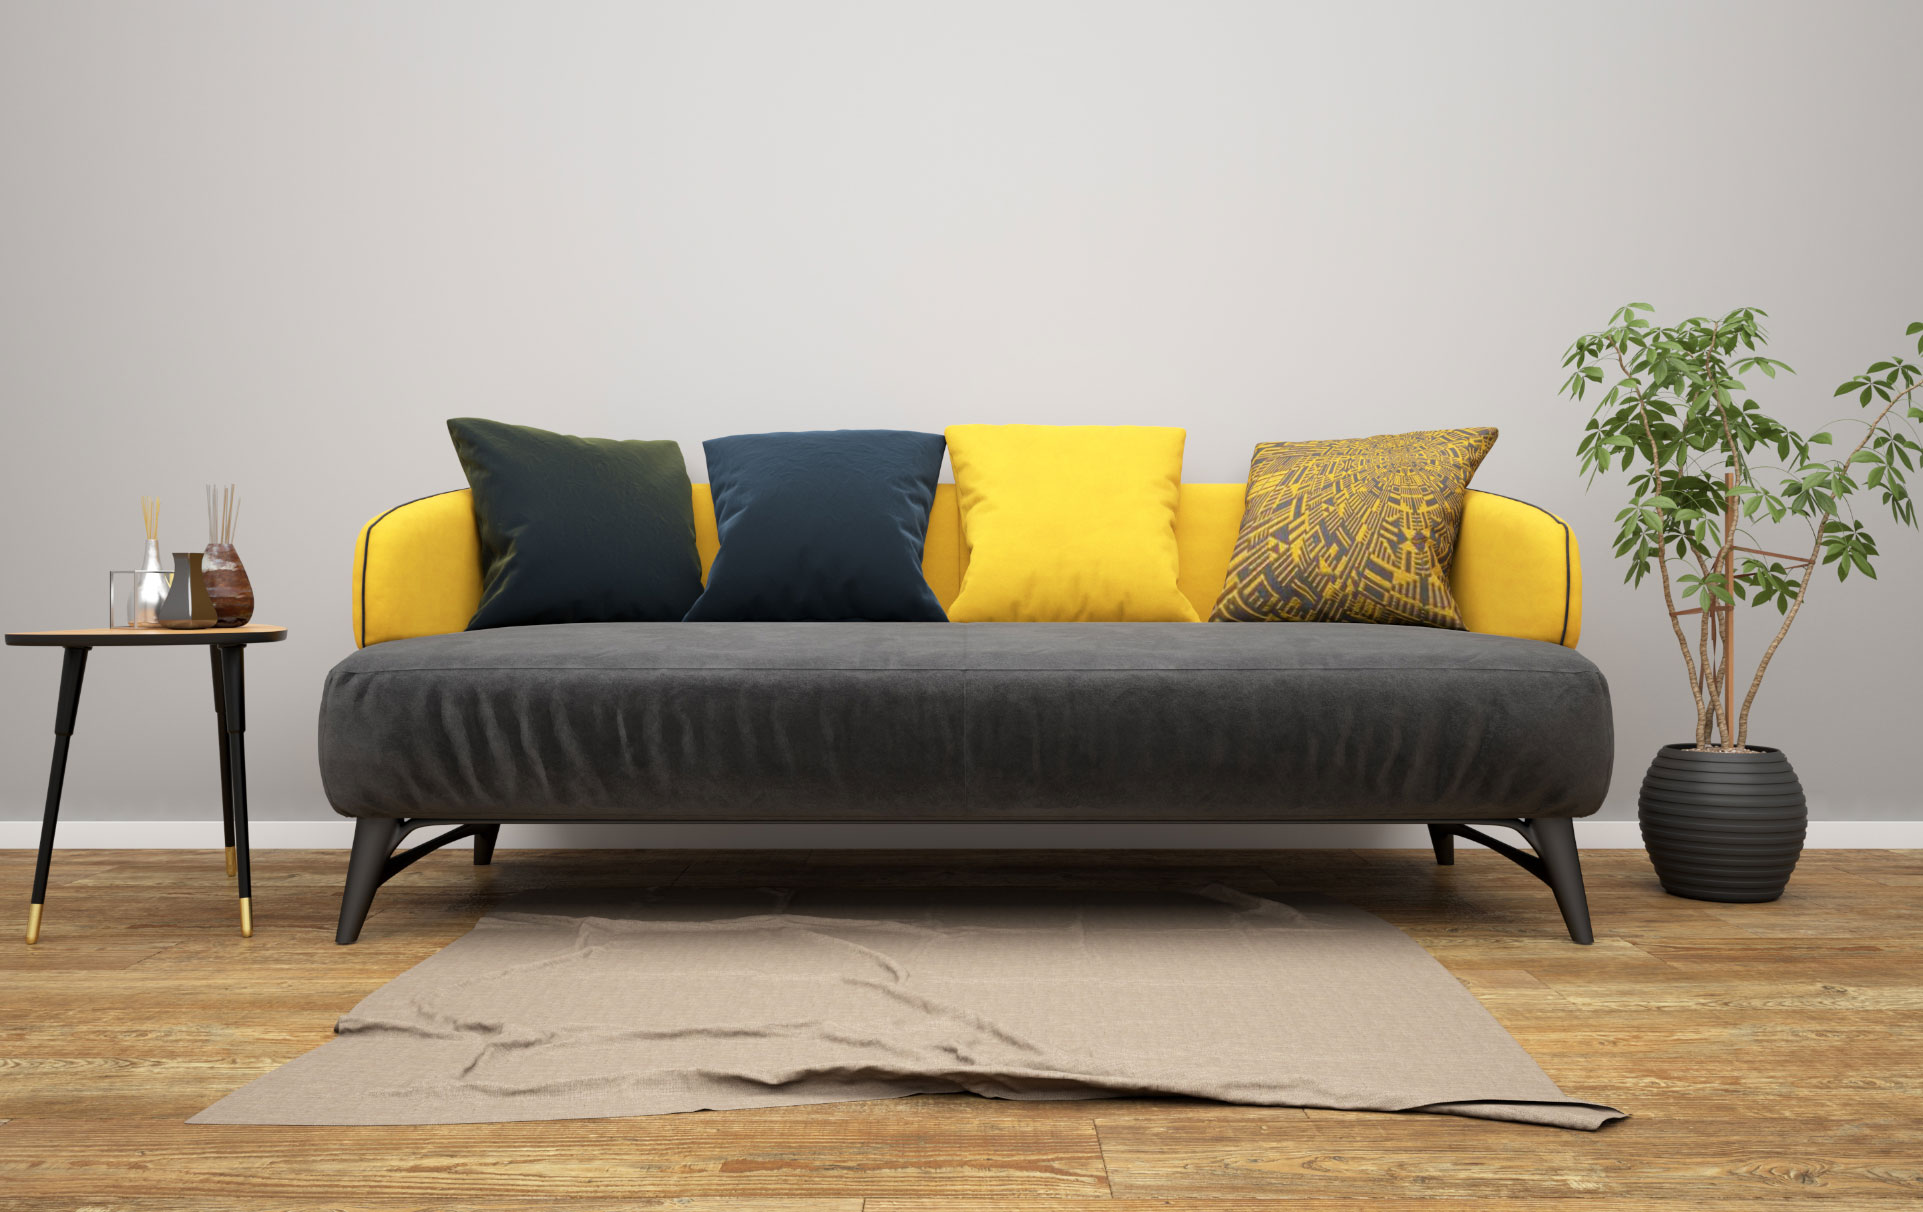 Sofa geld design Stil